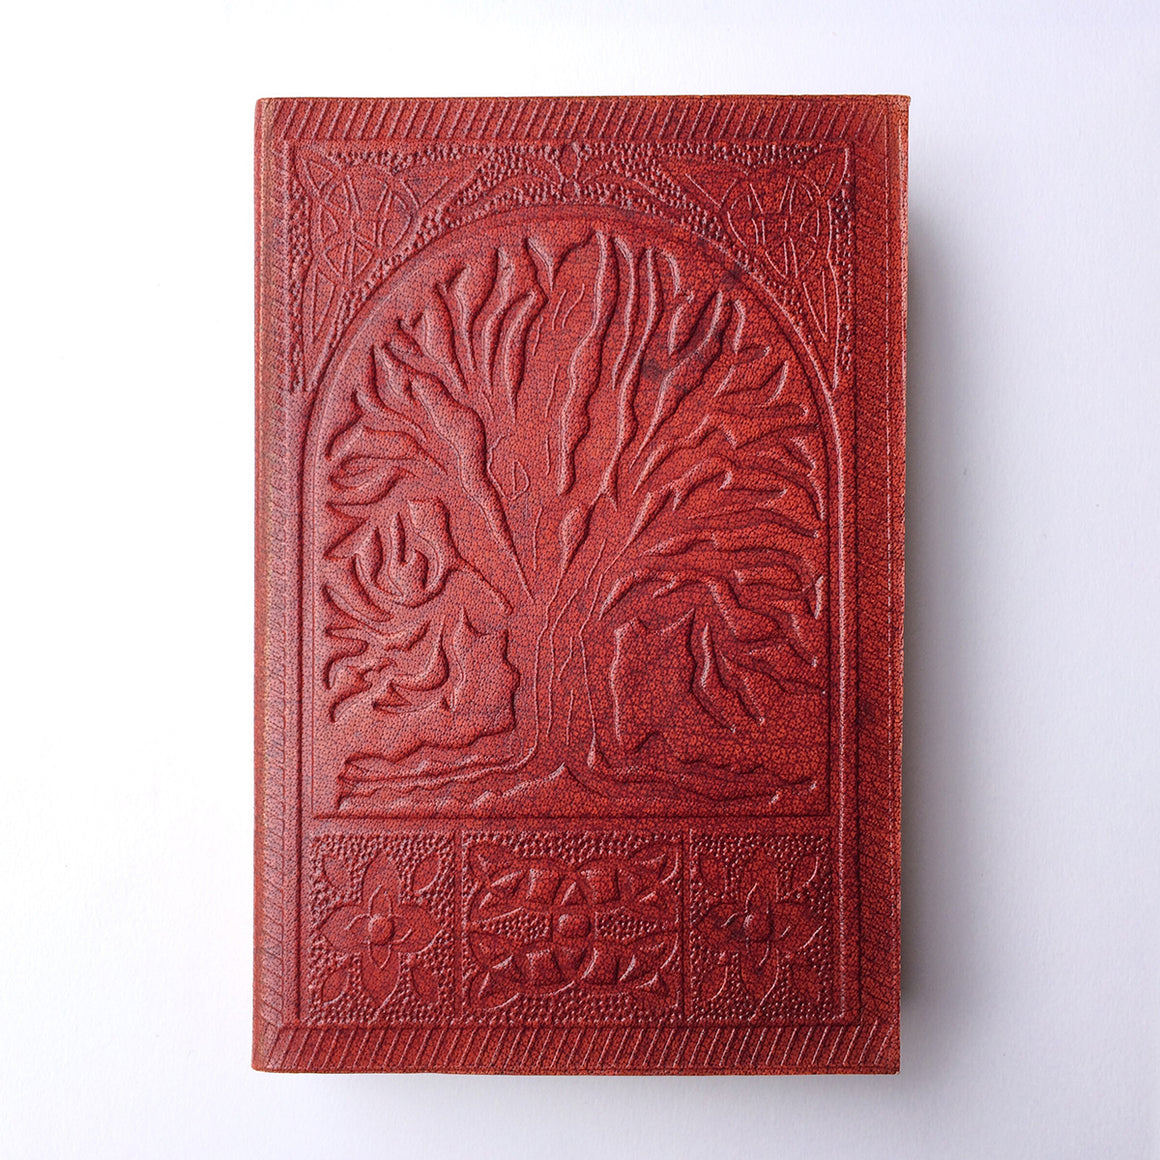 Fair Trade Leather Notebook with embossed Mandala design / Handmade Indian Leather Diary / Sketchbook / Journal - Front Cover